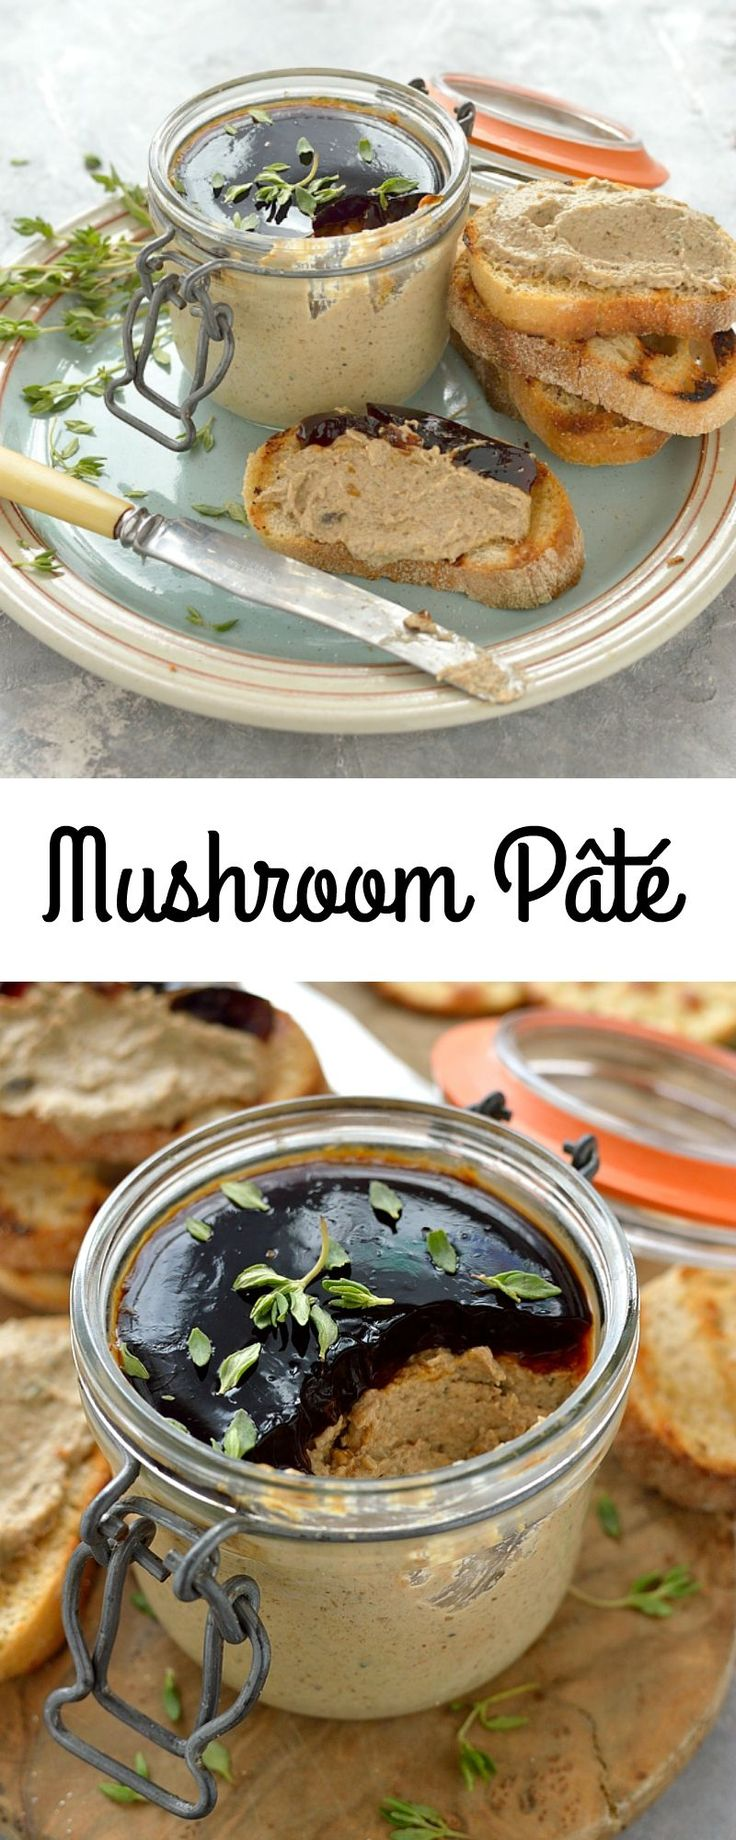 Best 25 porcini mushrooms ideas on pinterest mushroom for Canape recipes jamie oliver